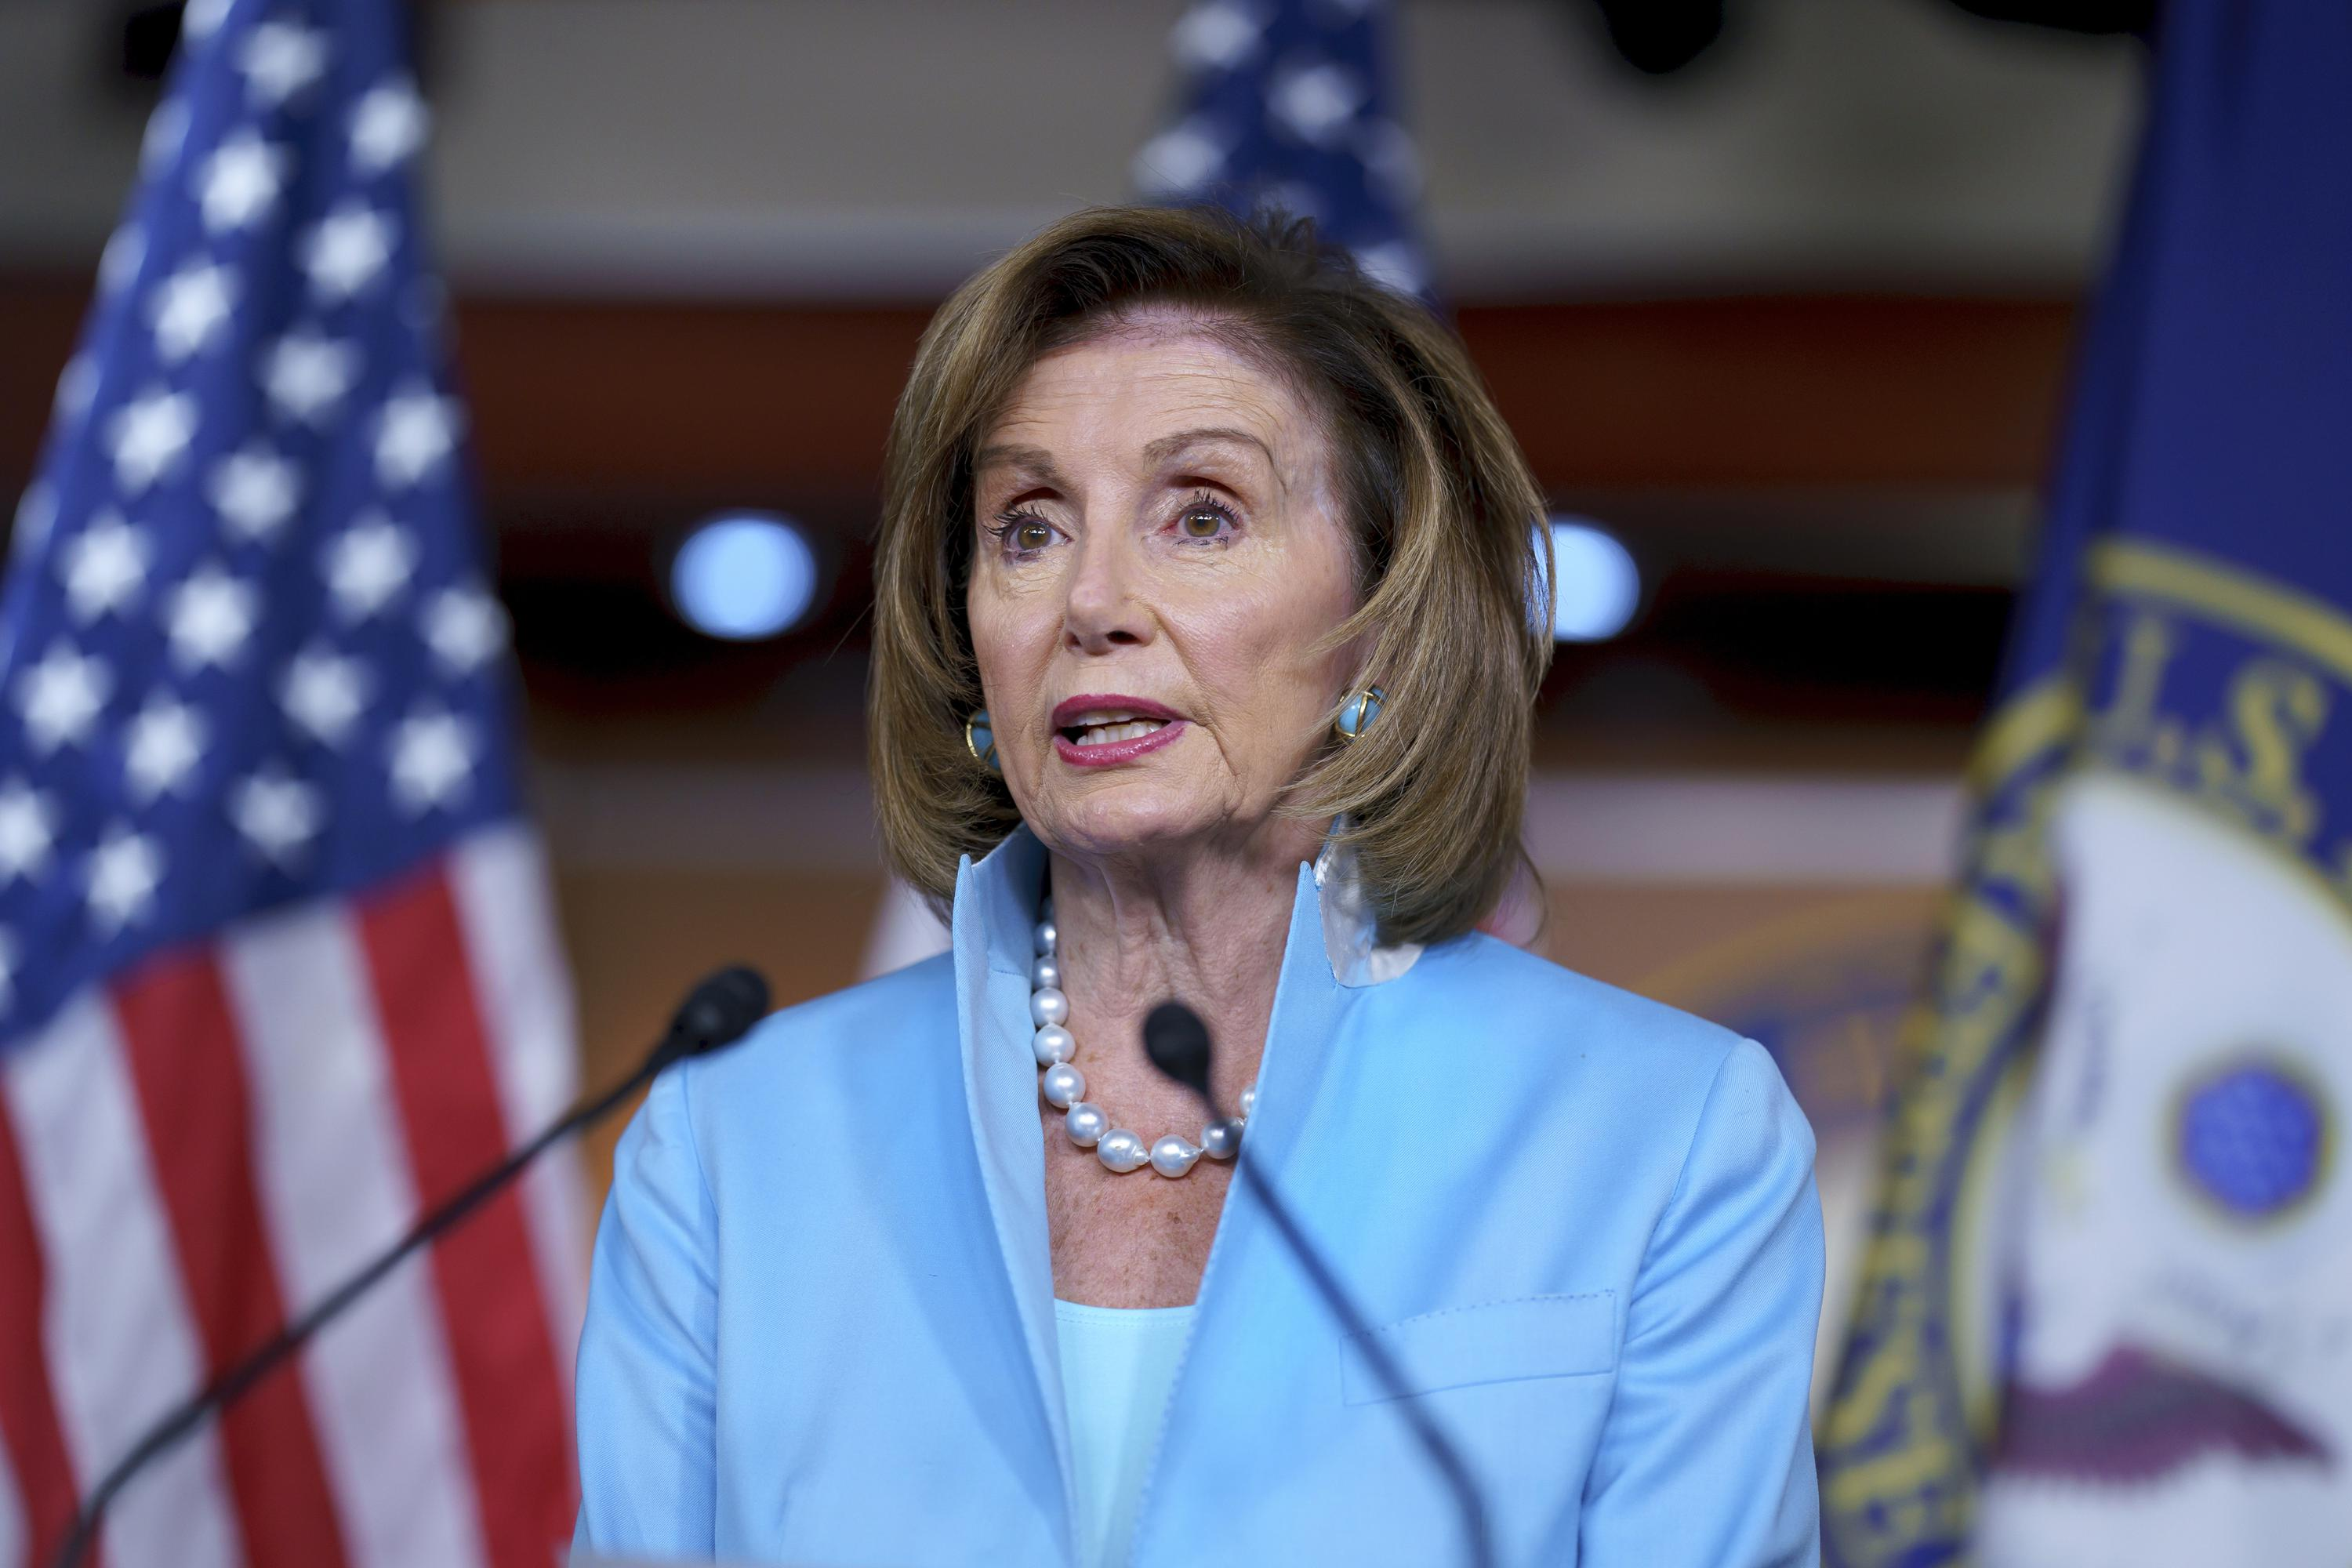 Nancy Pelosi Blames the Media for Not 'Selling' Biden's .5 Trillion Spending Plan as She Admits Democrats Will Have to Cut It and Insists Plans for the IRS to Snoop on Americans Will Still Be Included